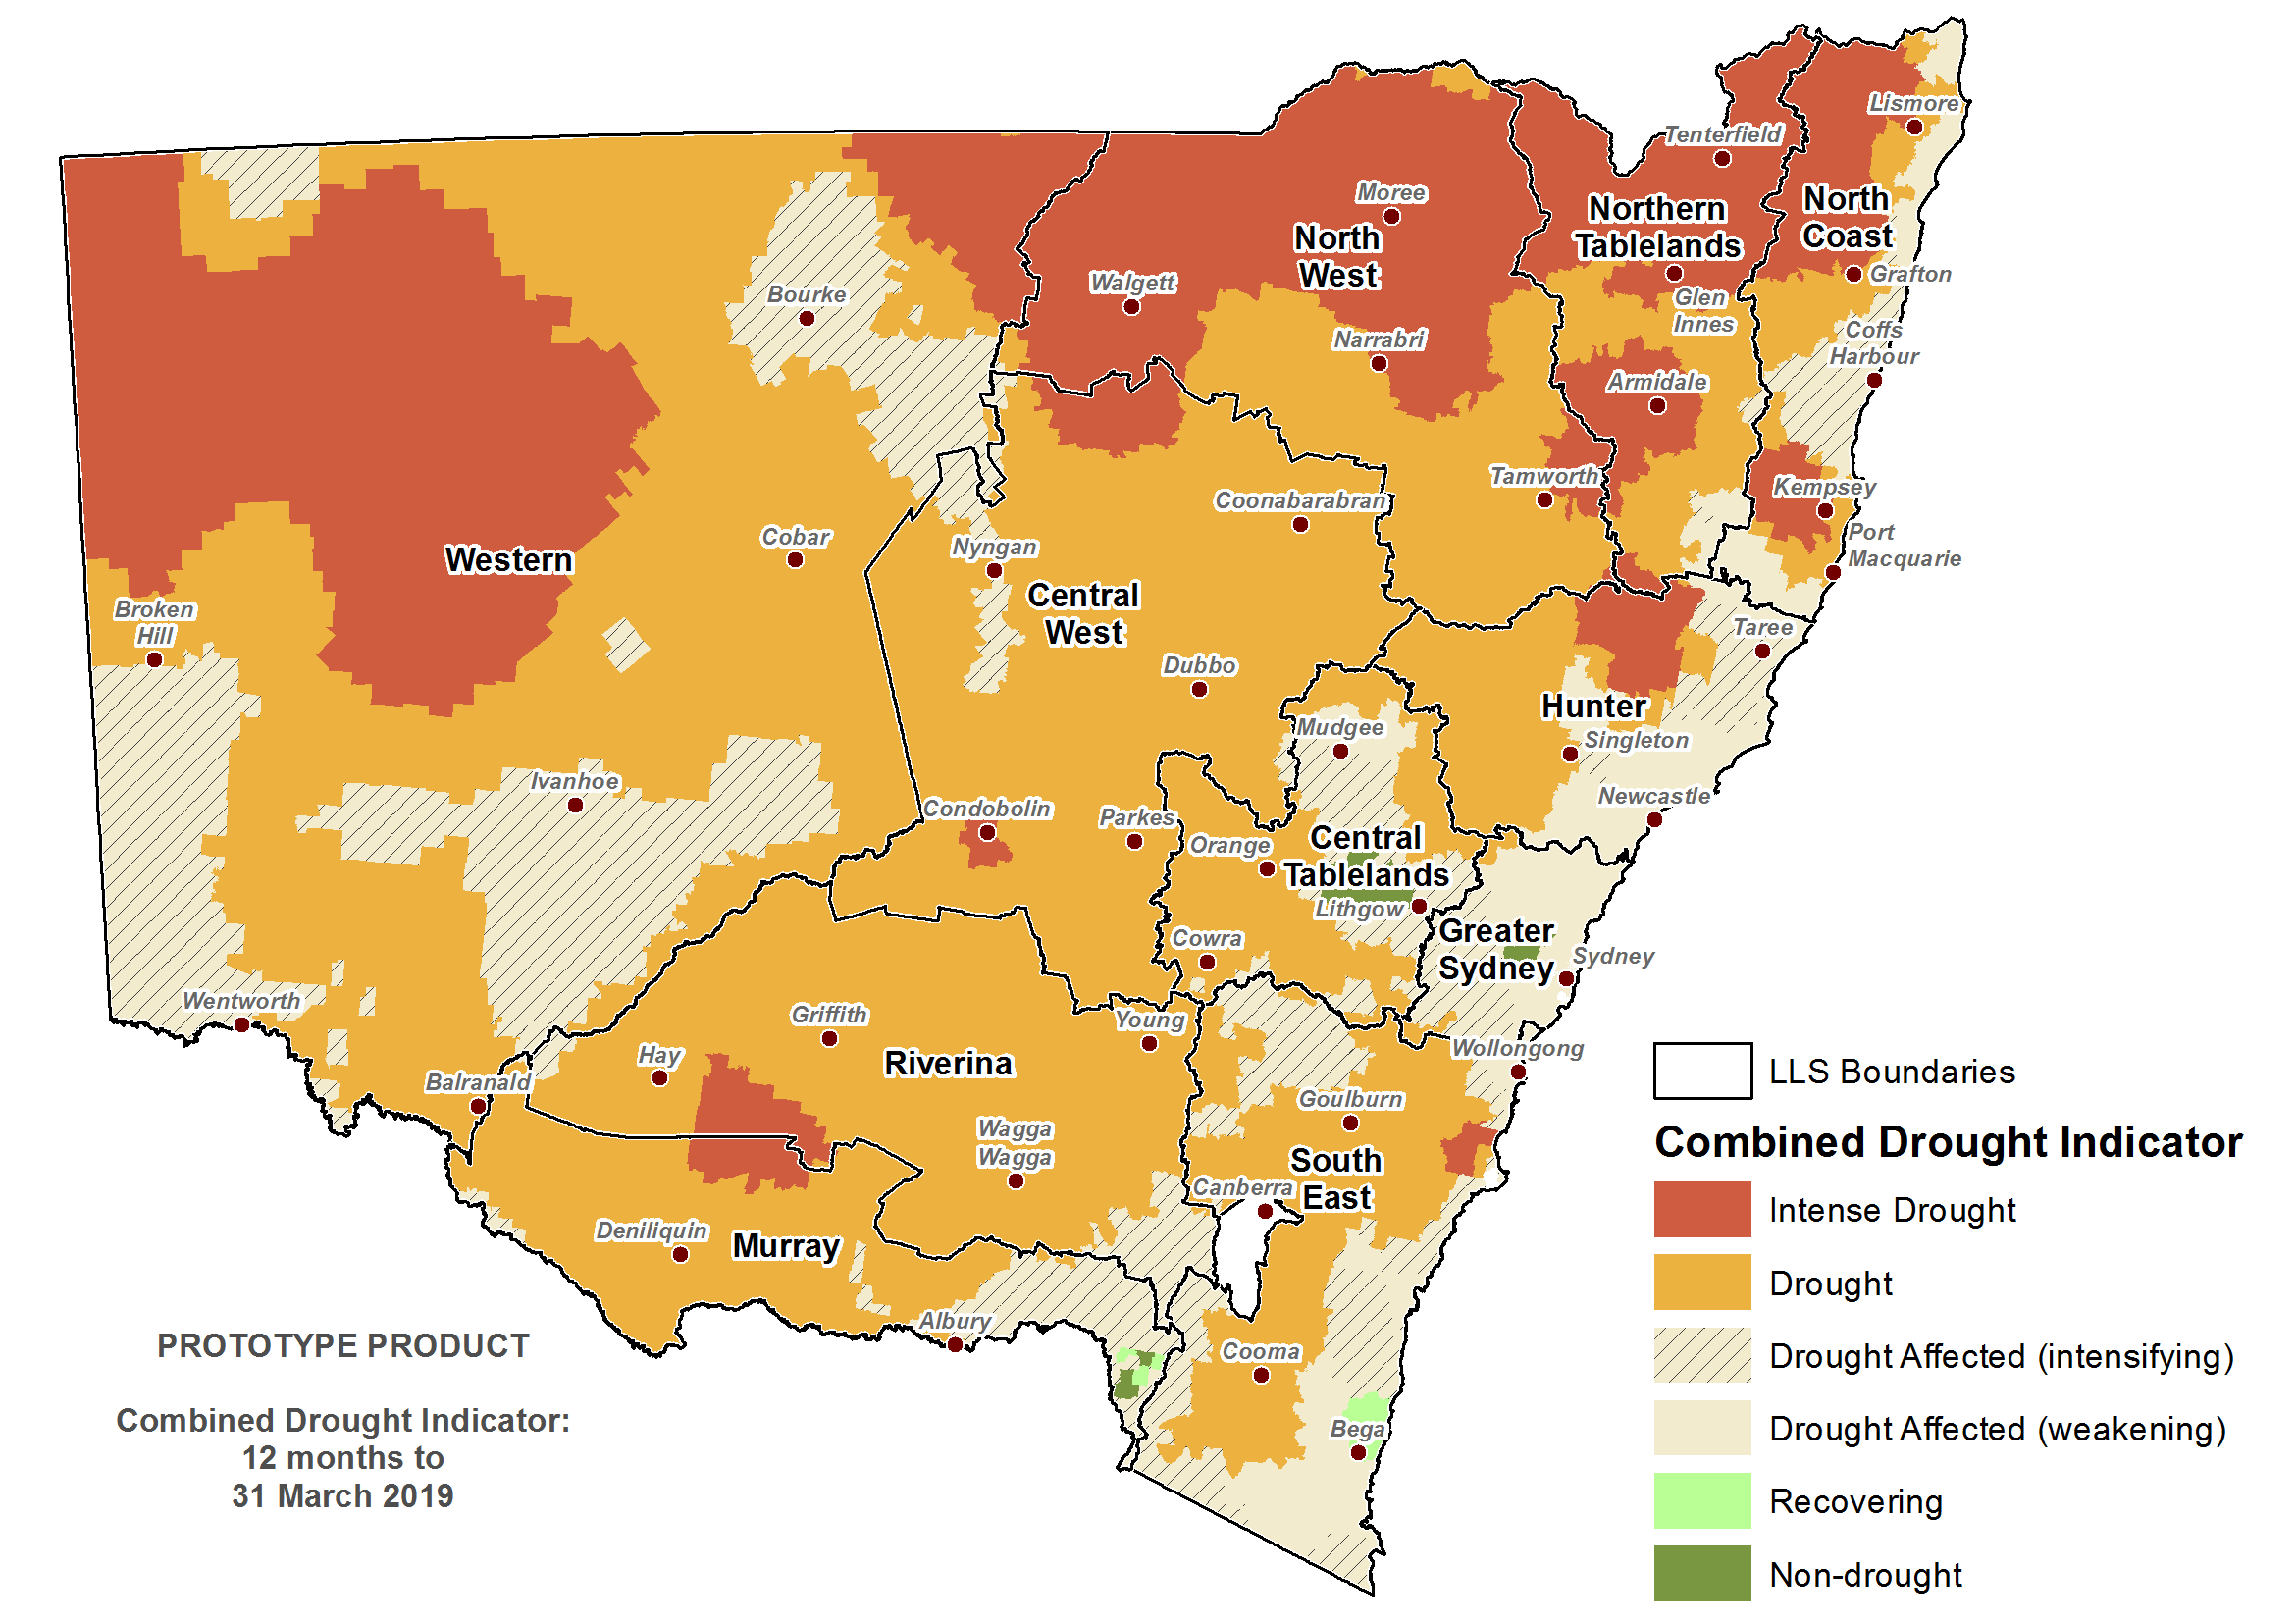 Verified NSW Combined Drought Indicator to 31 March 2019 - For an accessible explanation of this image contact scott.wallace@dpi.nsw.gov.au